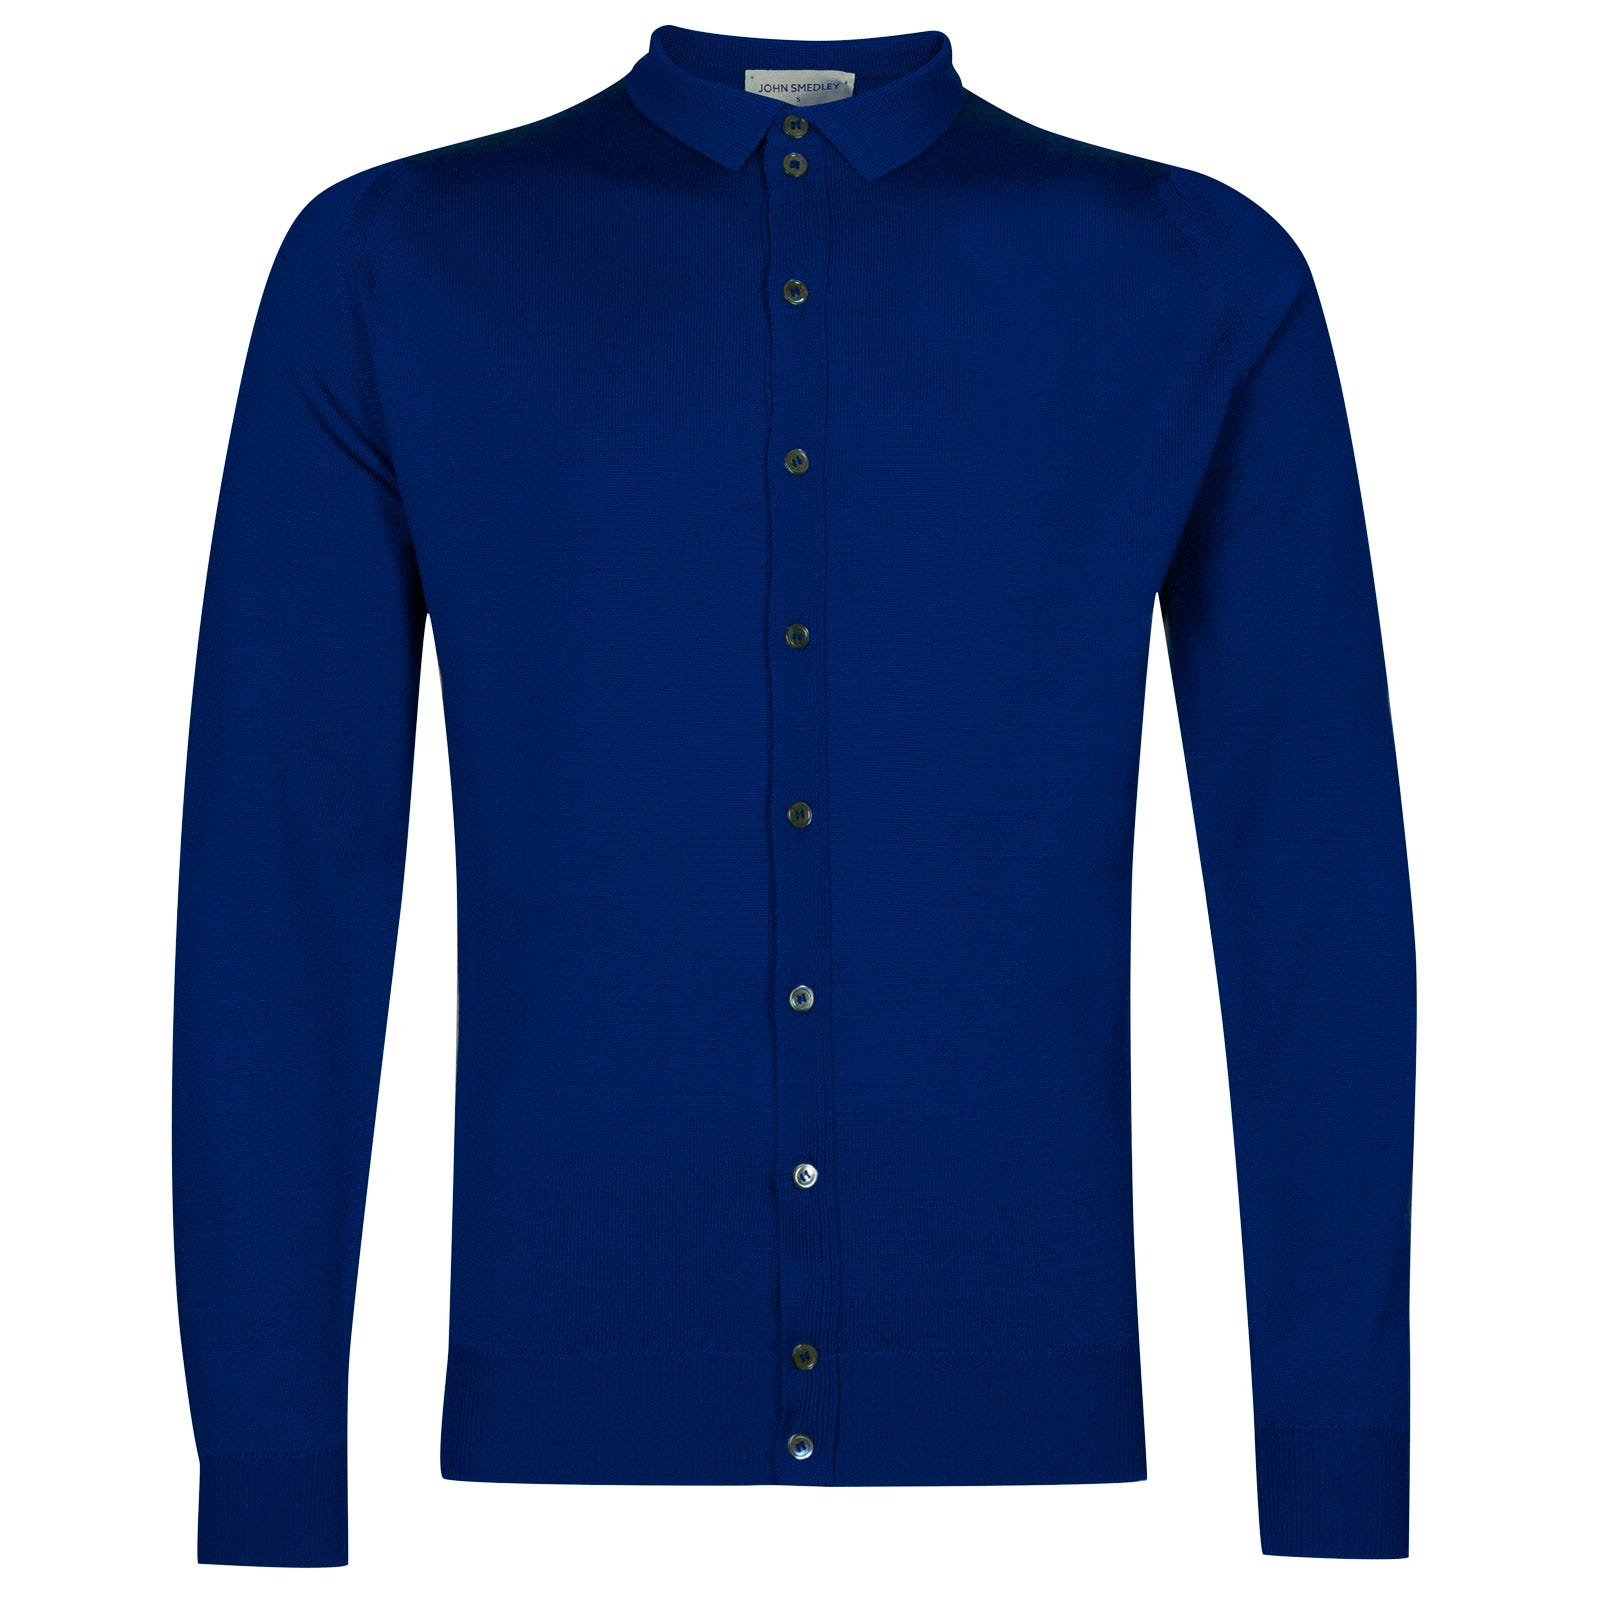 John Smedley parwish Merino Wool Shirt in Coniston Blue-L